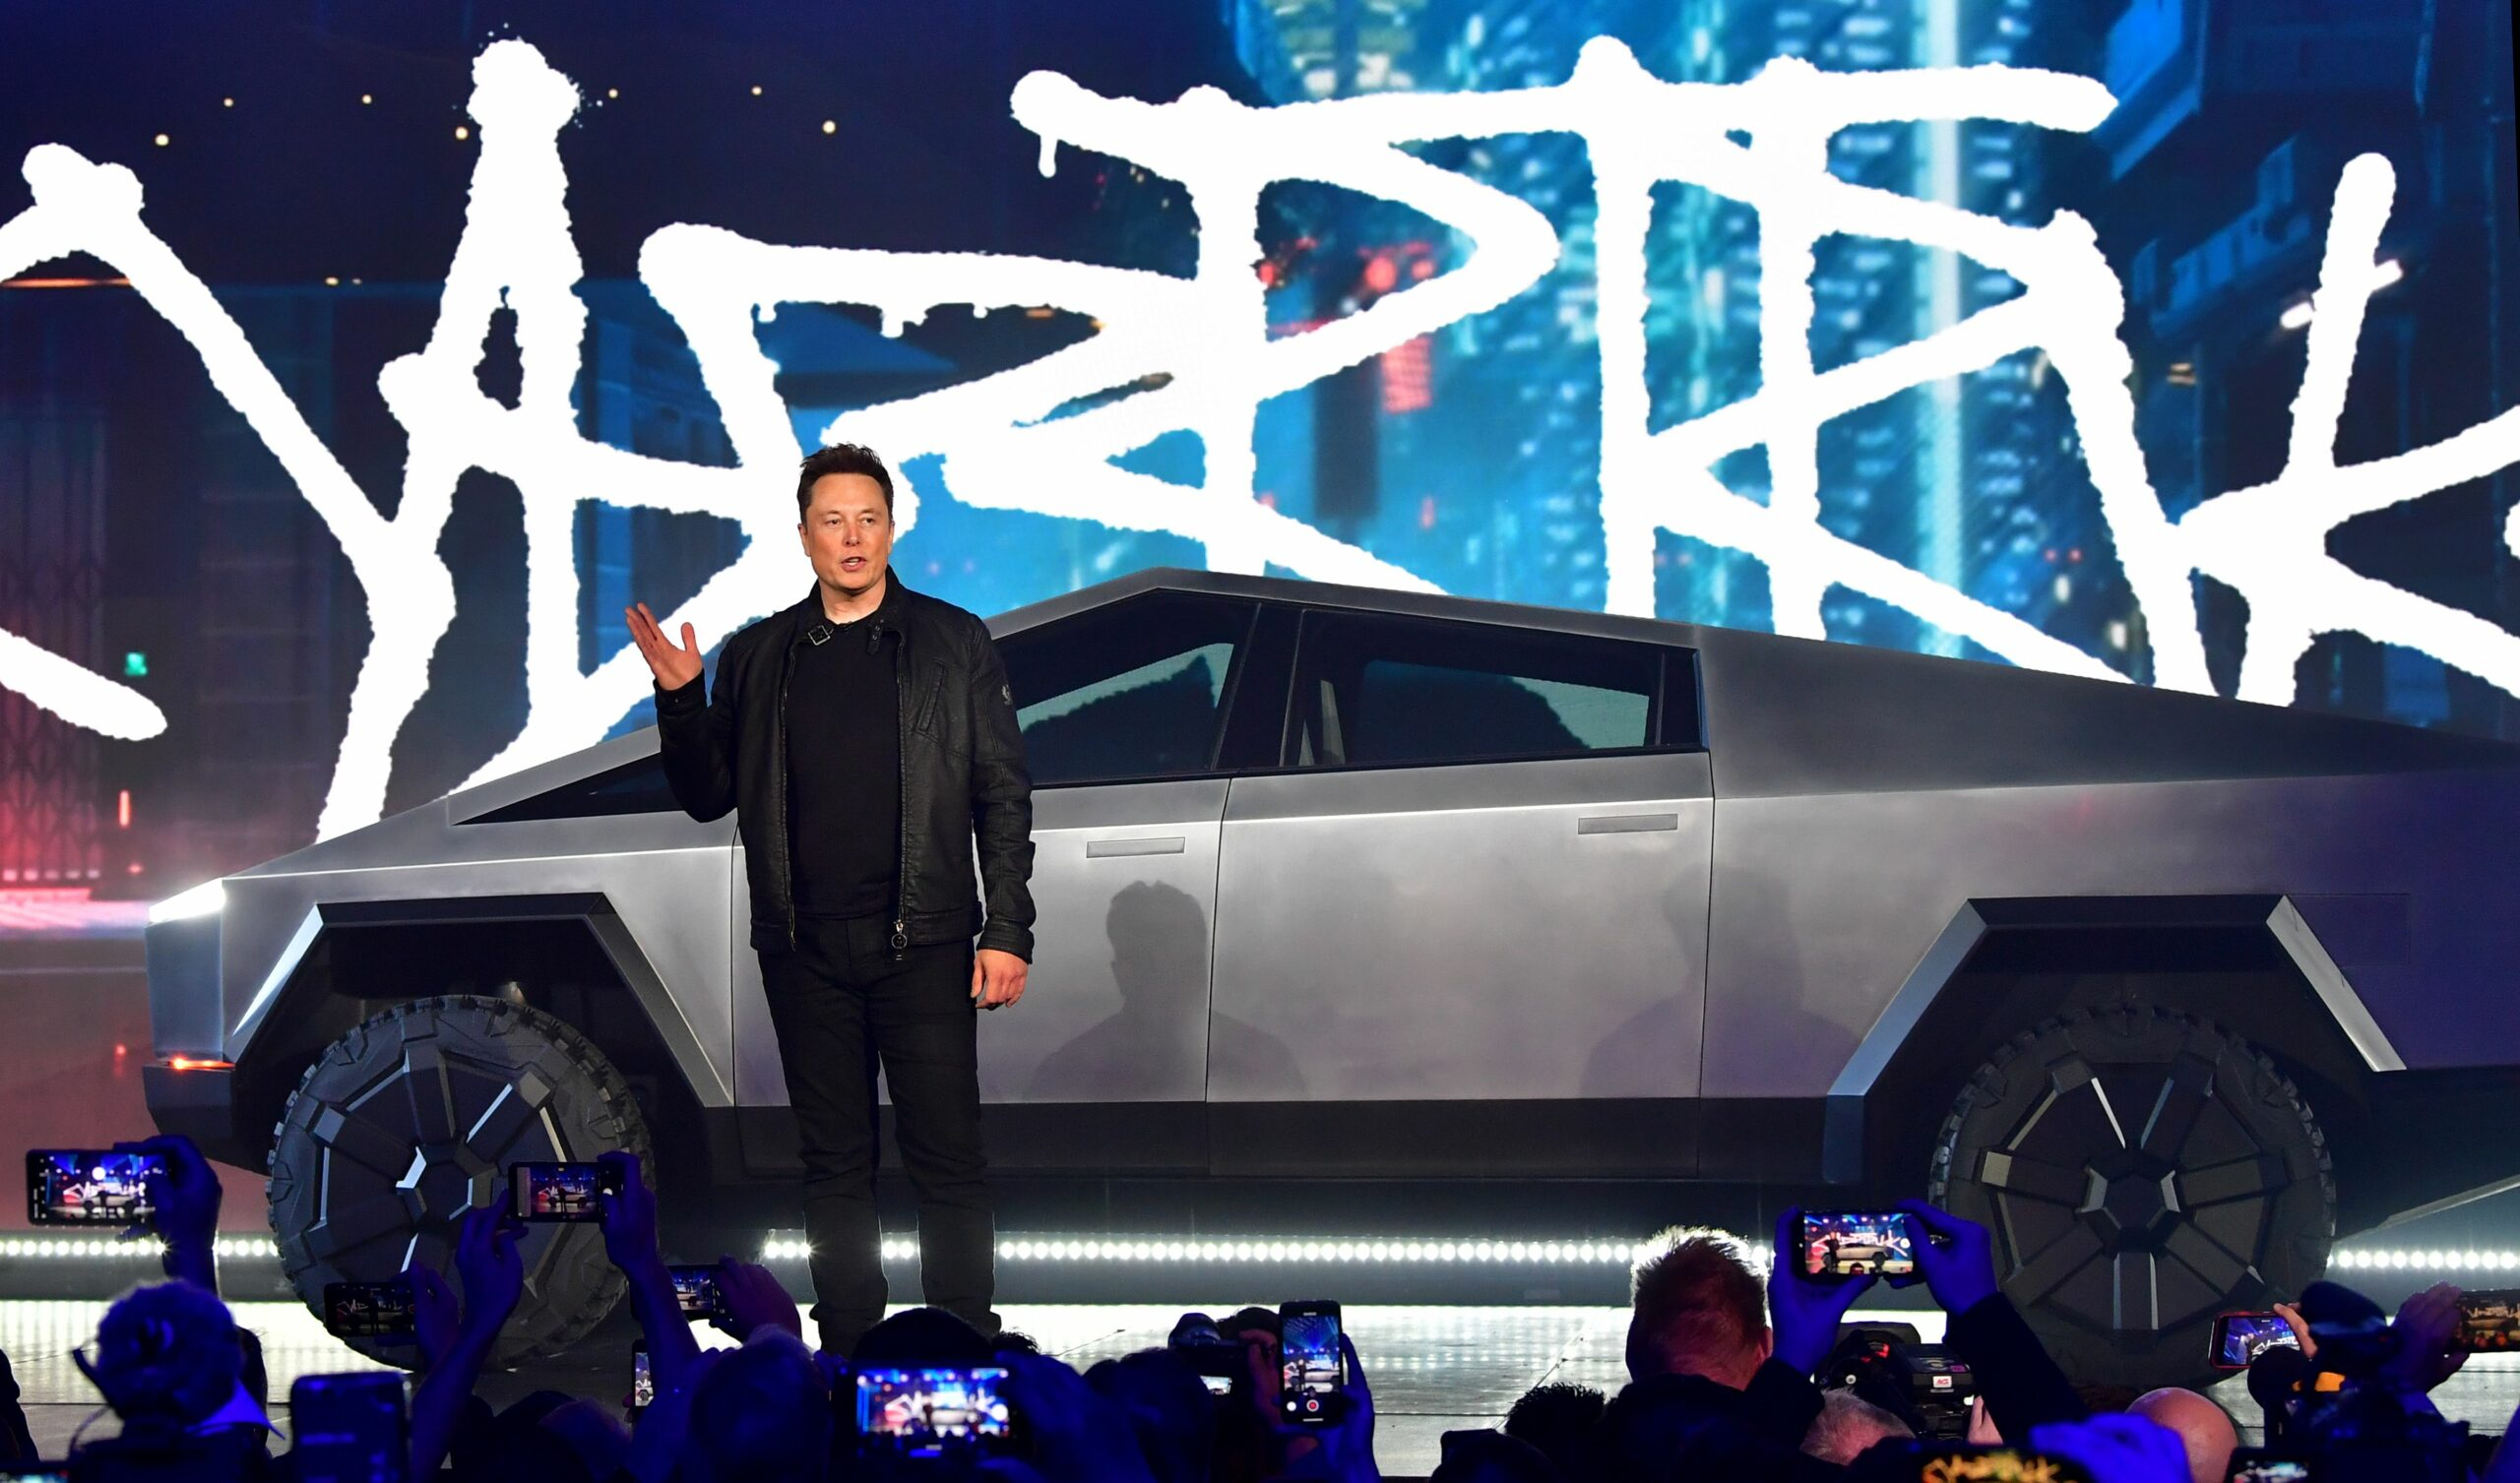 Tesla Is Coming with Two New Electric Cars after Cyber Truck